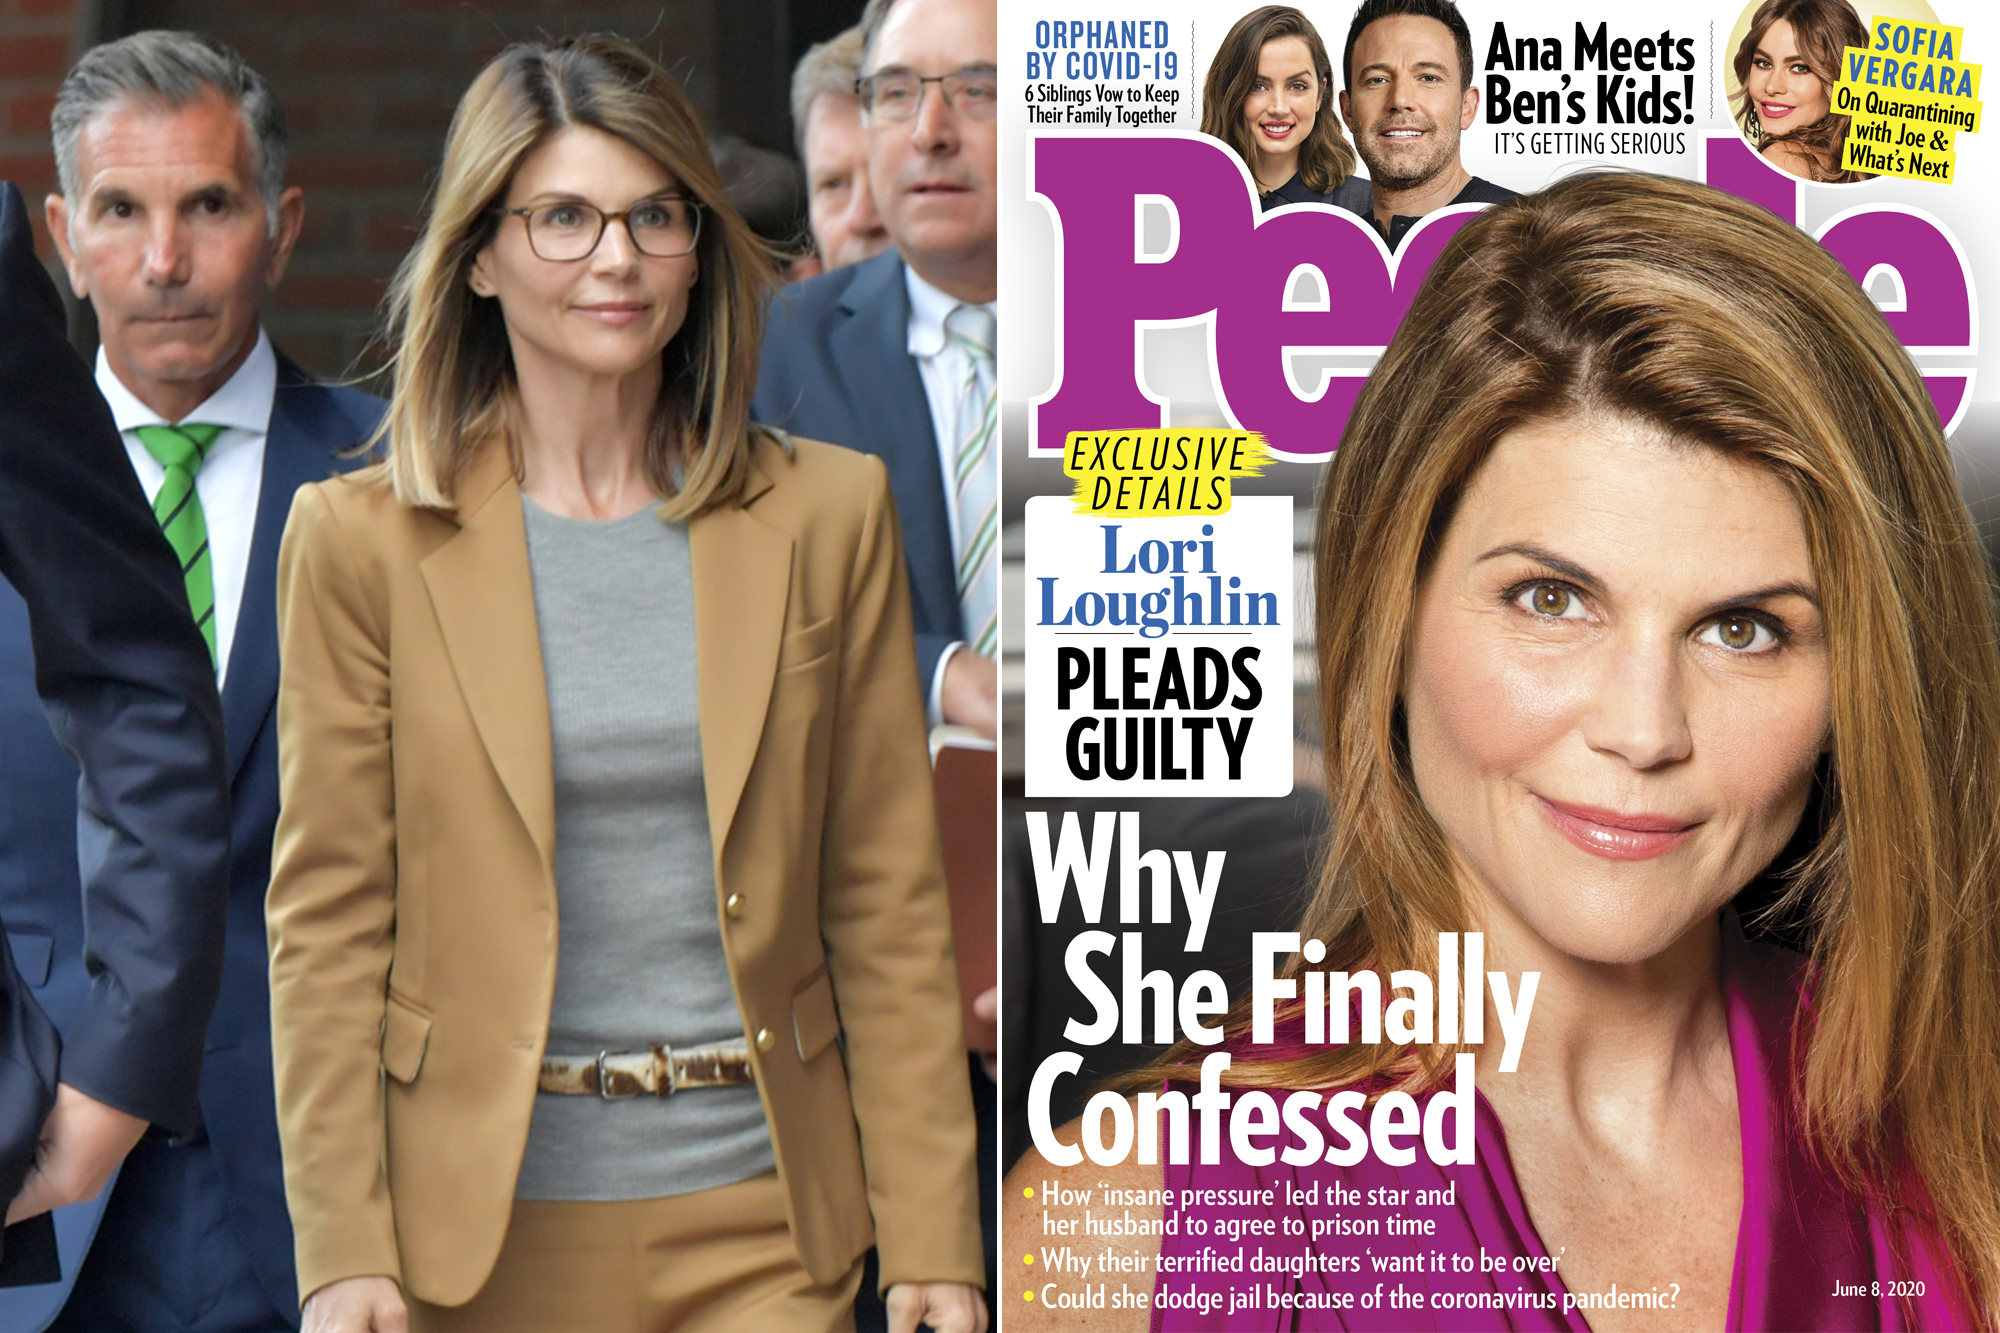 Lori Laughlin on the cover of people